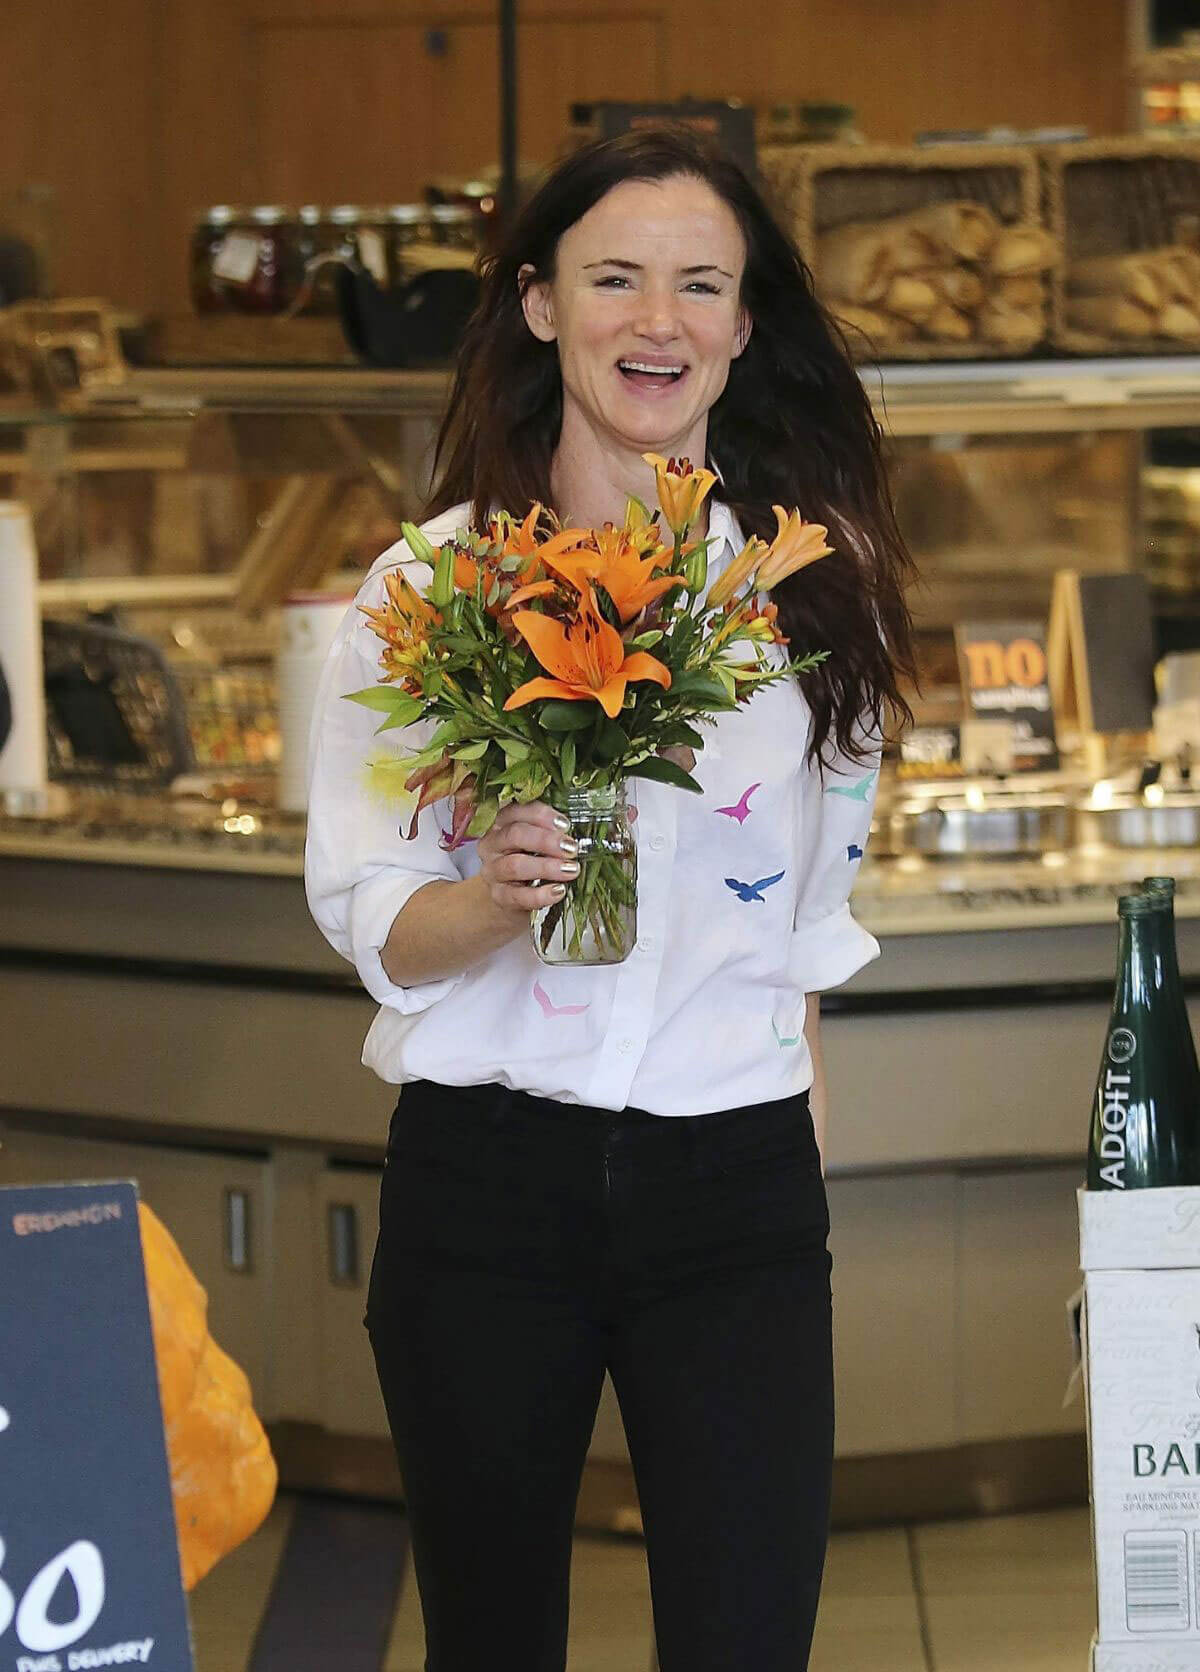 Juliette Lewis Stills Buys Flowers at Erewhon Market in West Hollywood